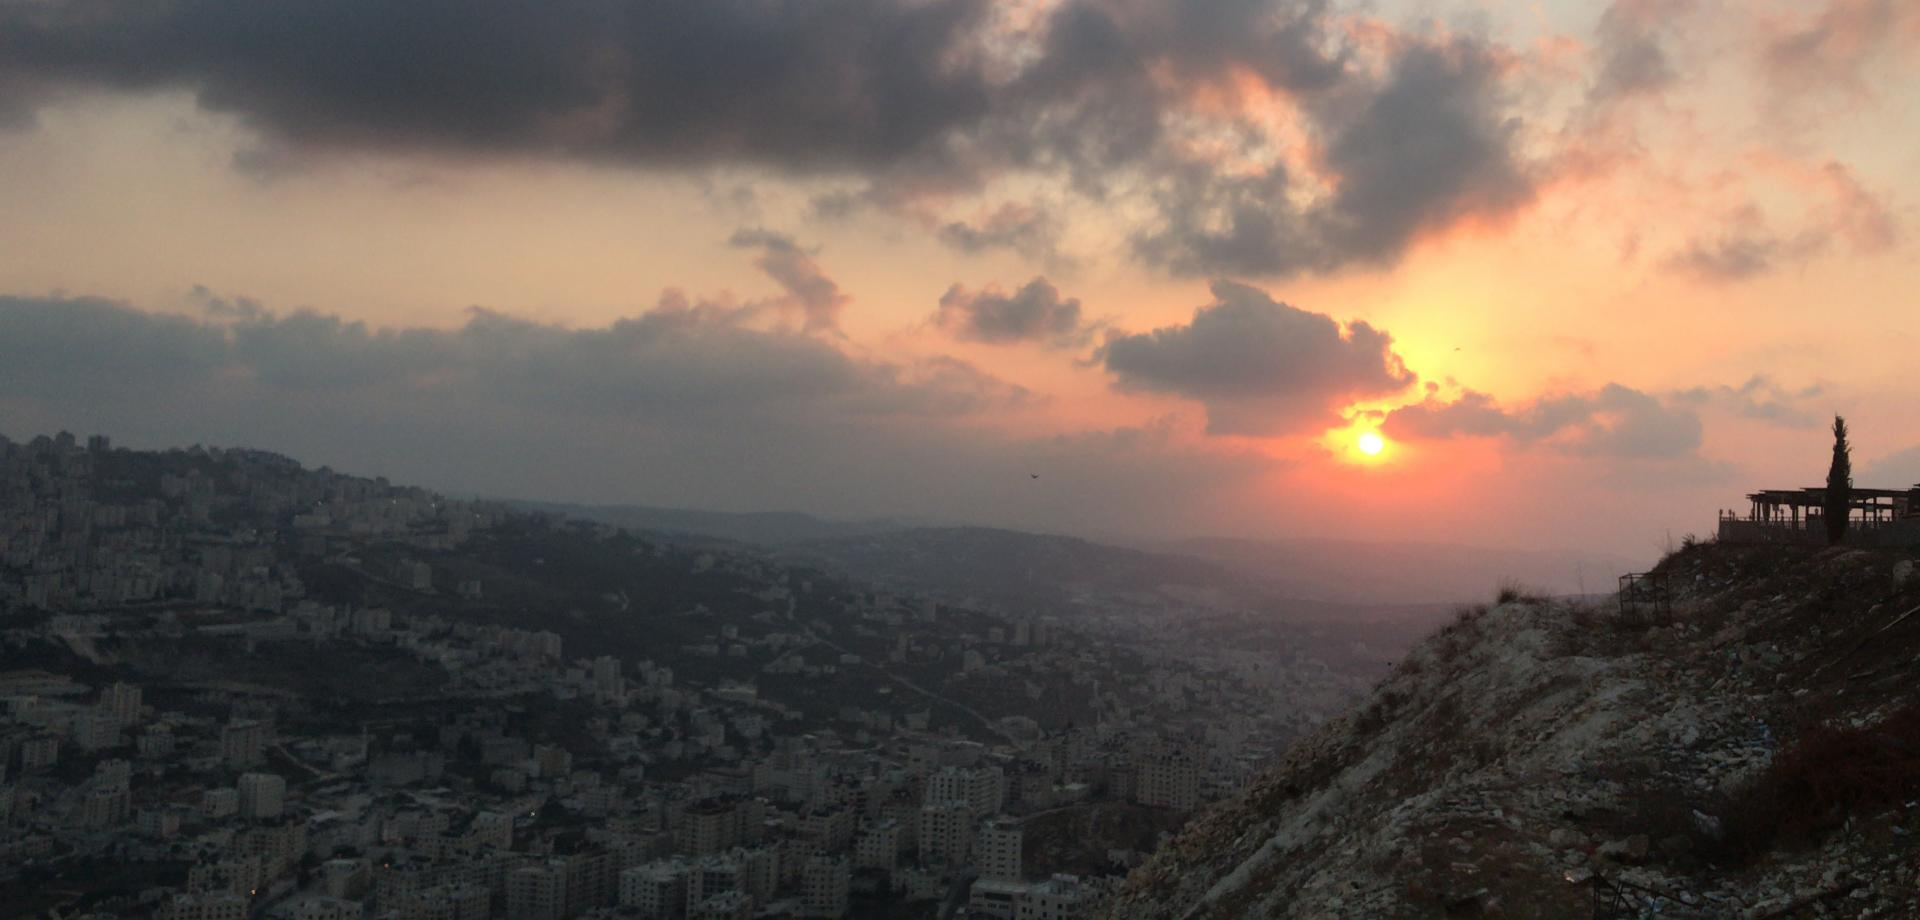 Sunset over Nablus in the West Bank